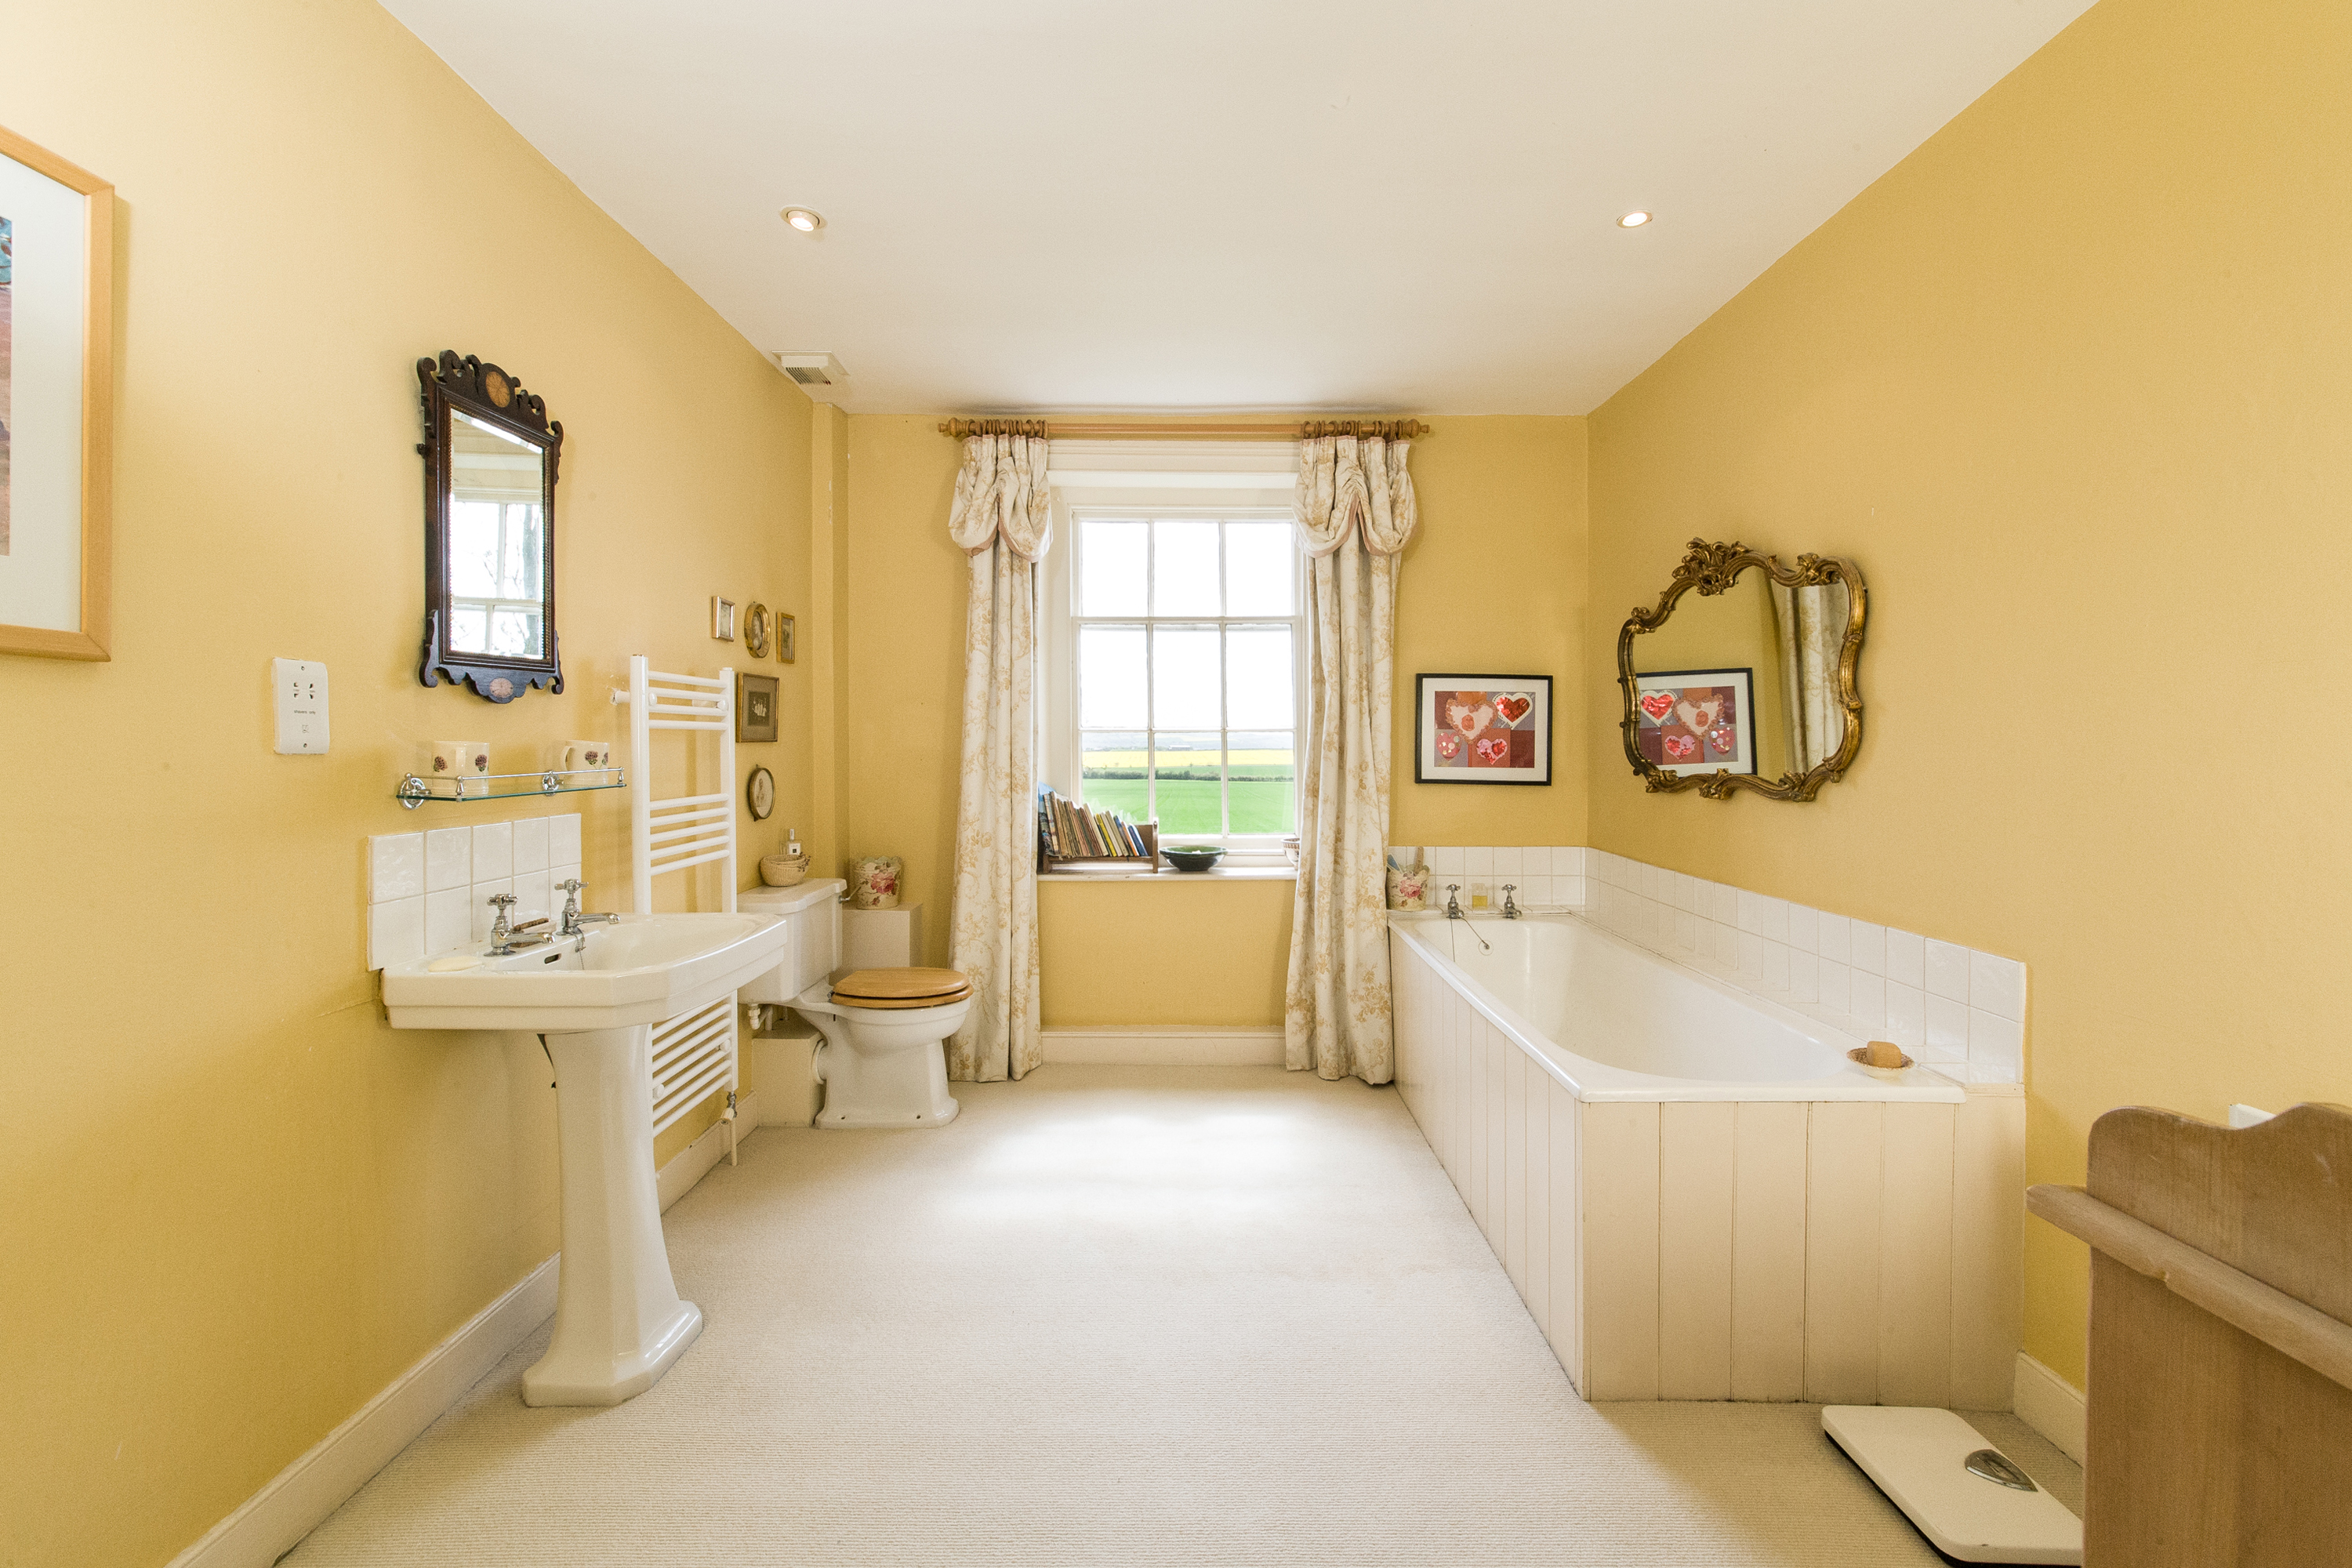 Bathroom designer photography